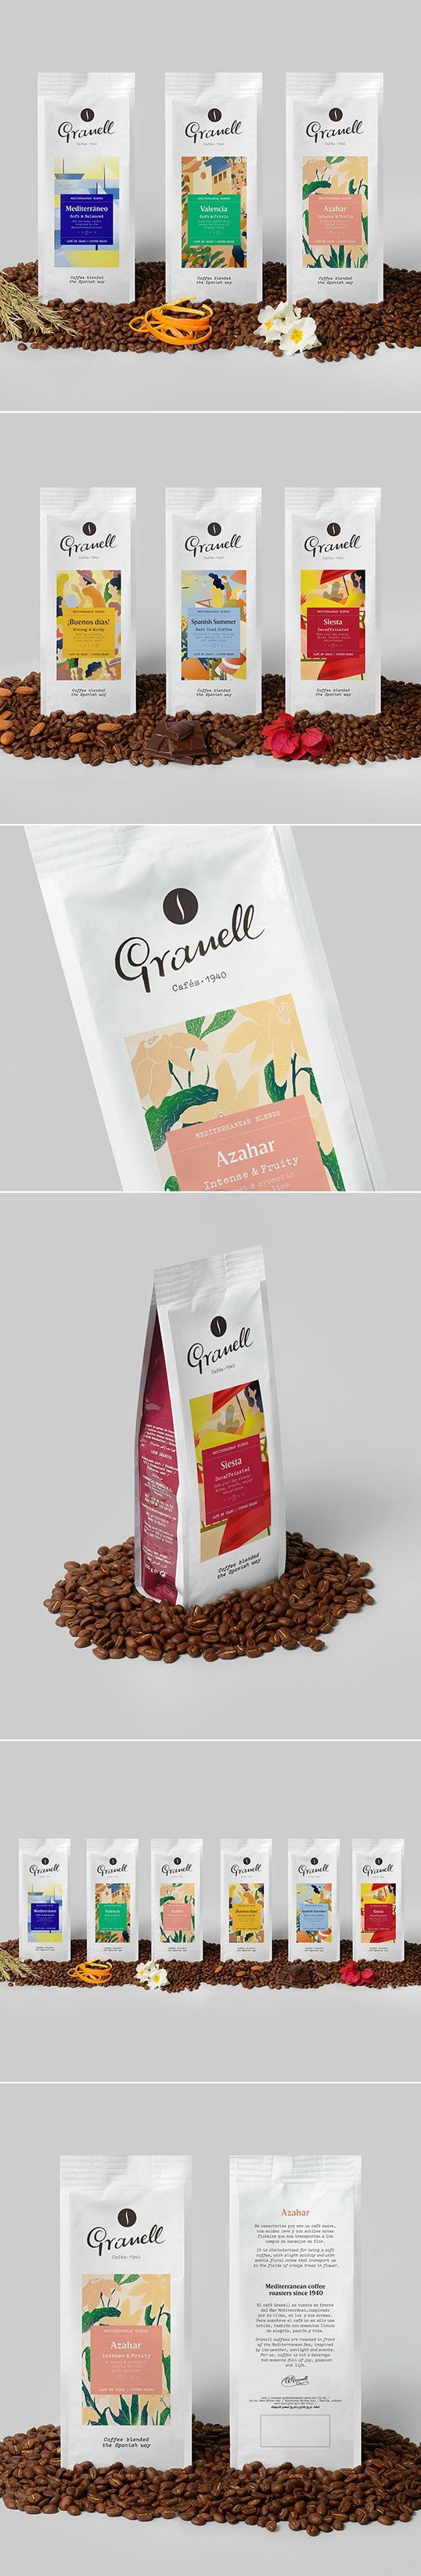 Lovely Package - Granell Coffee